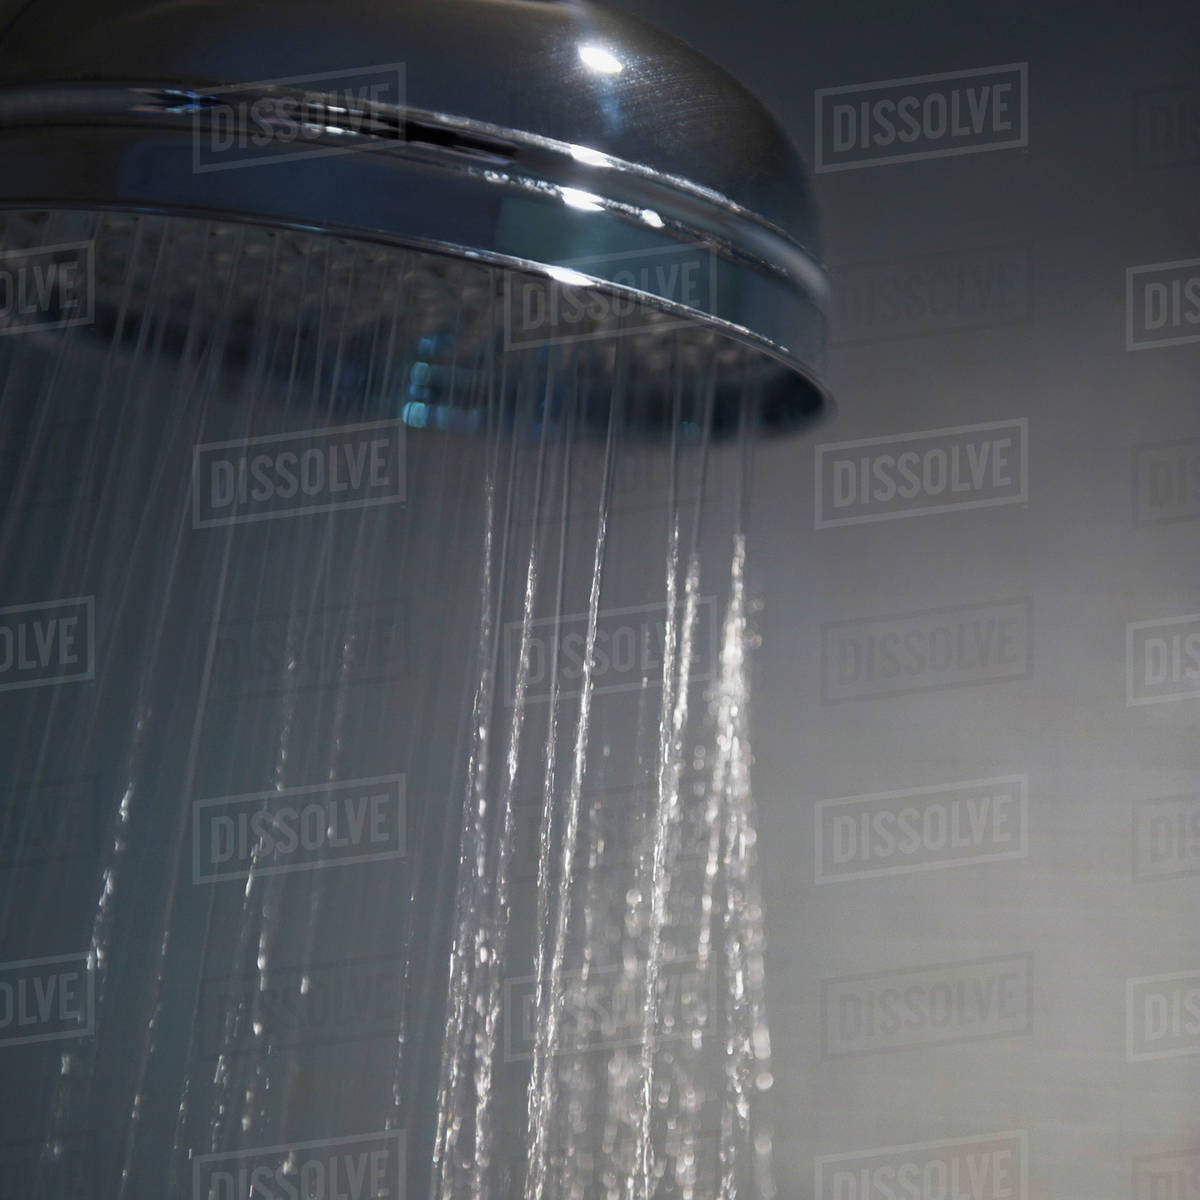 Water Coming Out Of A Showerhead - Stock Photo - Dissolve